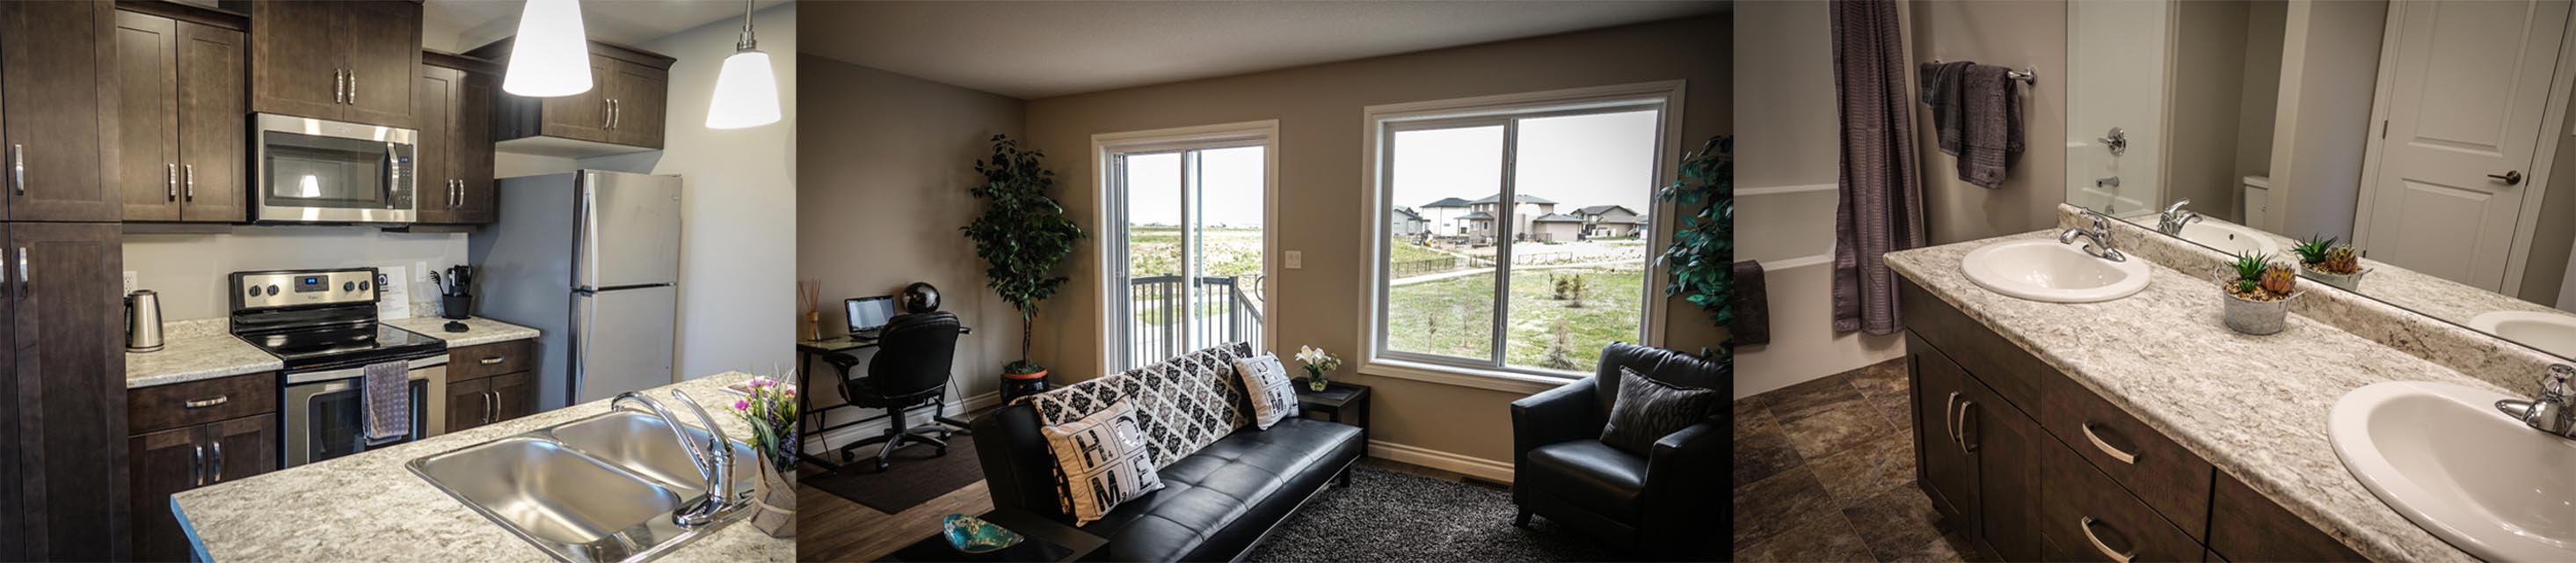 Only the Best: Sandstone Terrace Offers Affordable Condo Living in Pilot Butte - Image 1